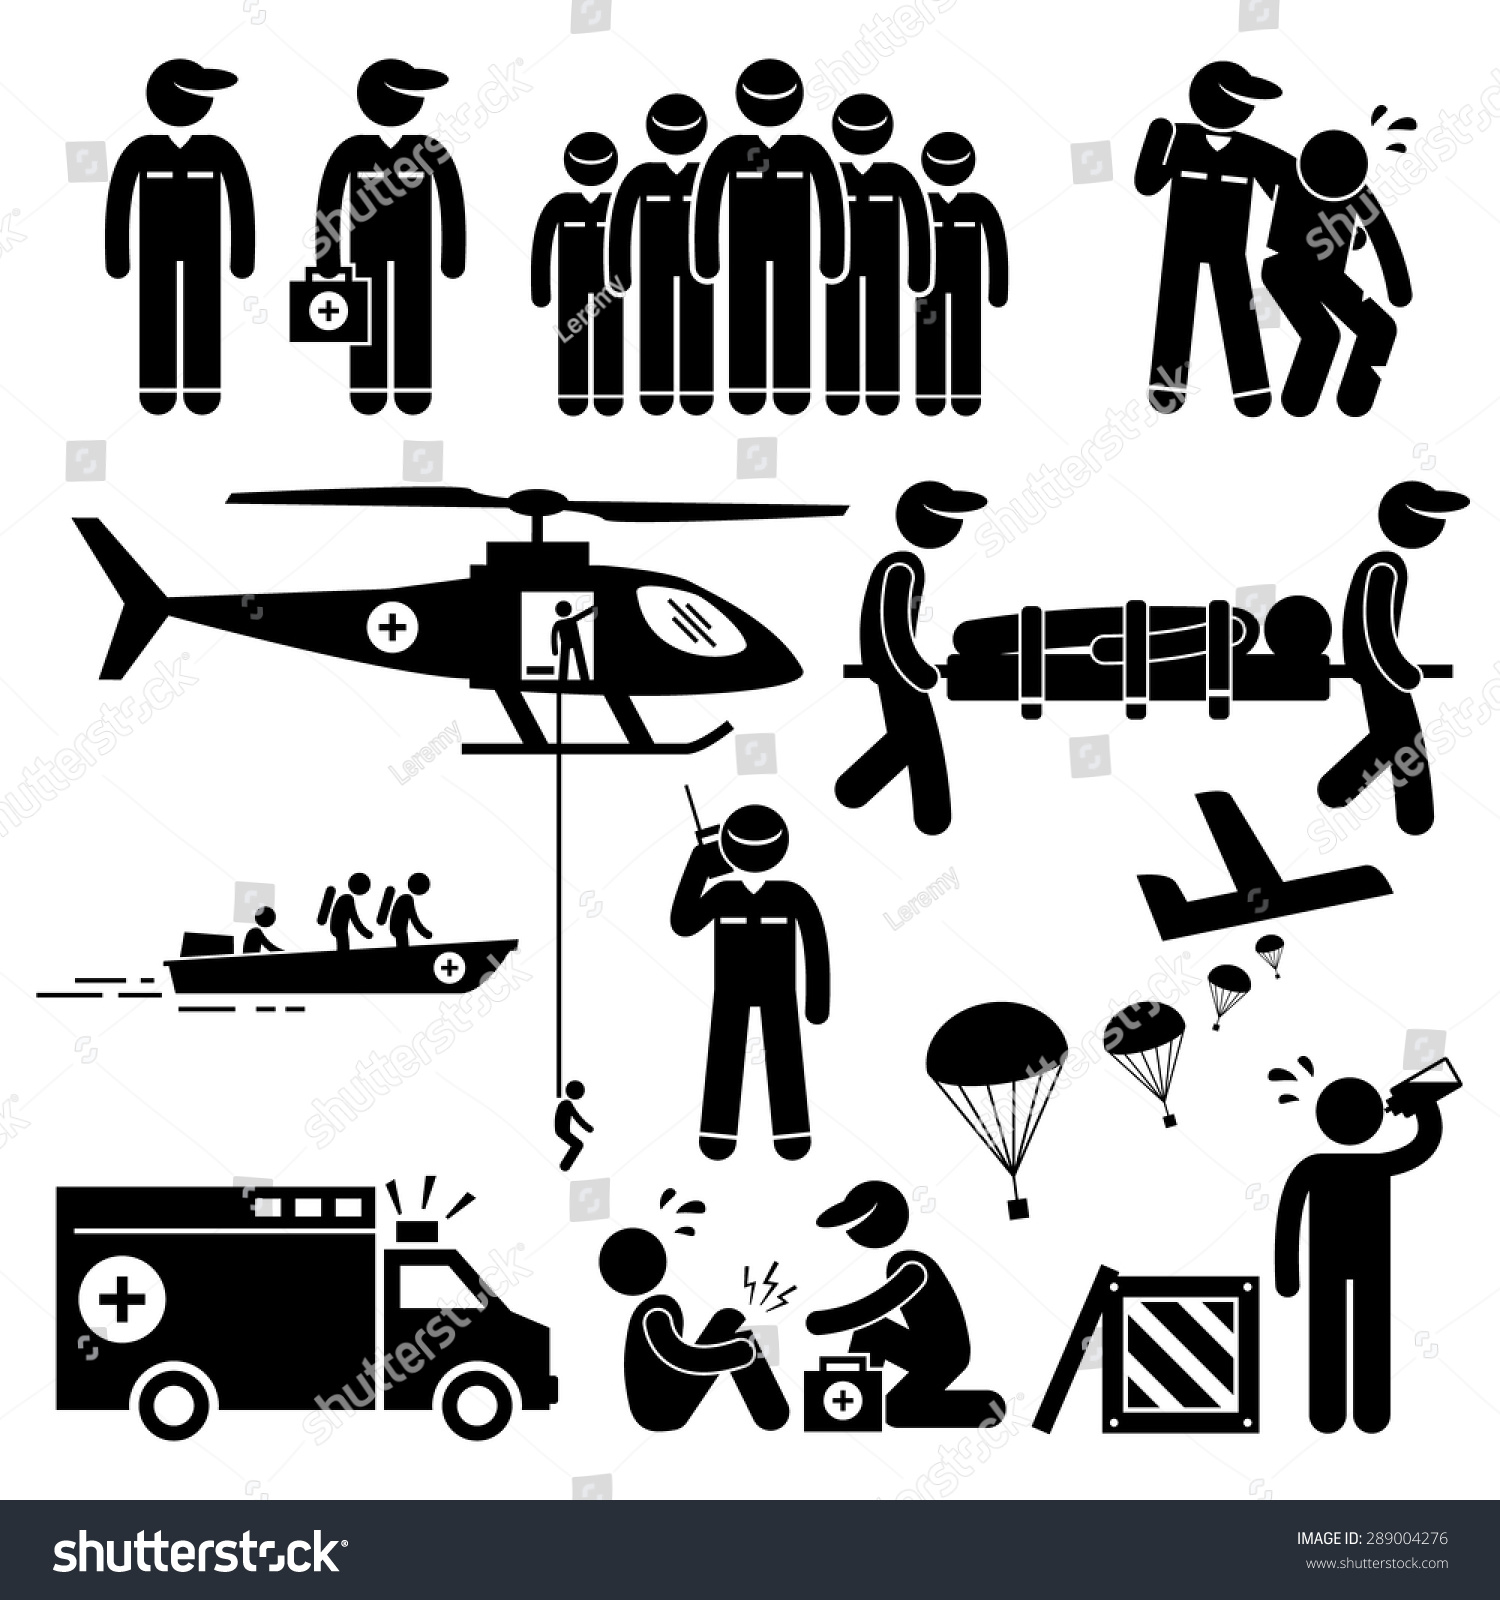 Emergency Rescue Team Stick Figure Pictogram Stock Vector ...